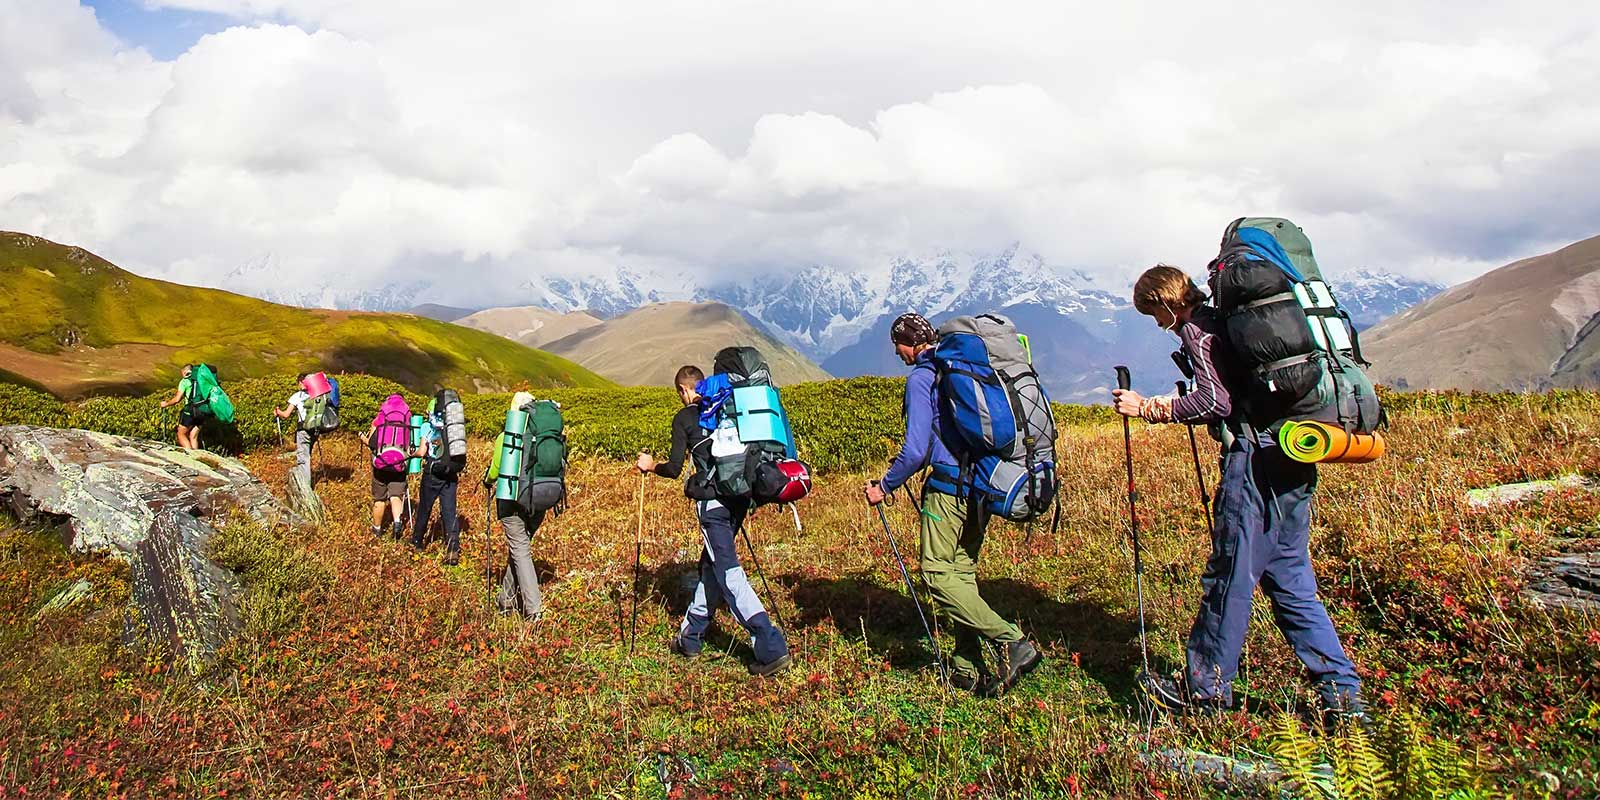 Group trekking with camping gear in mountains